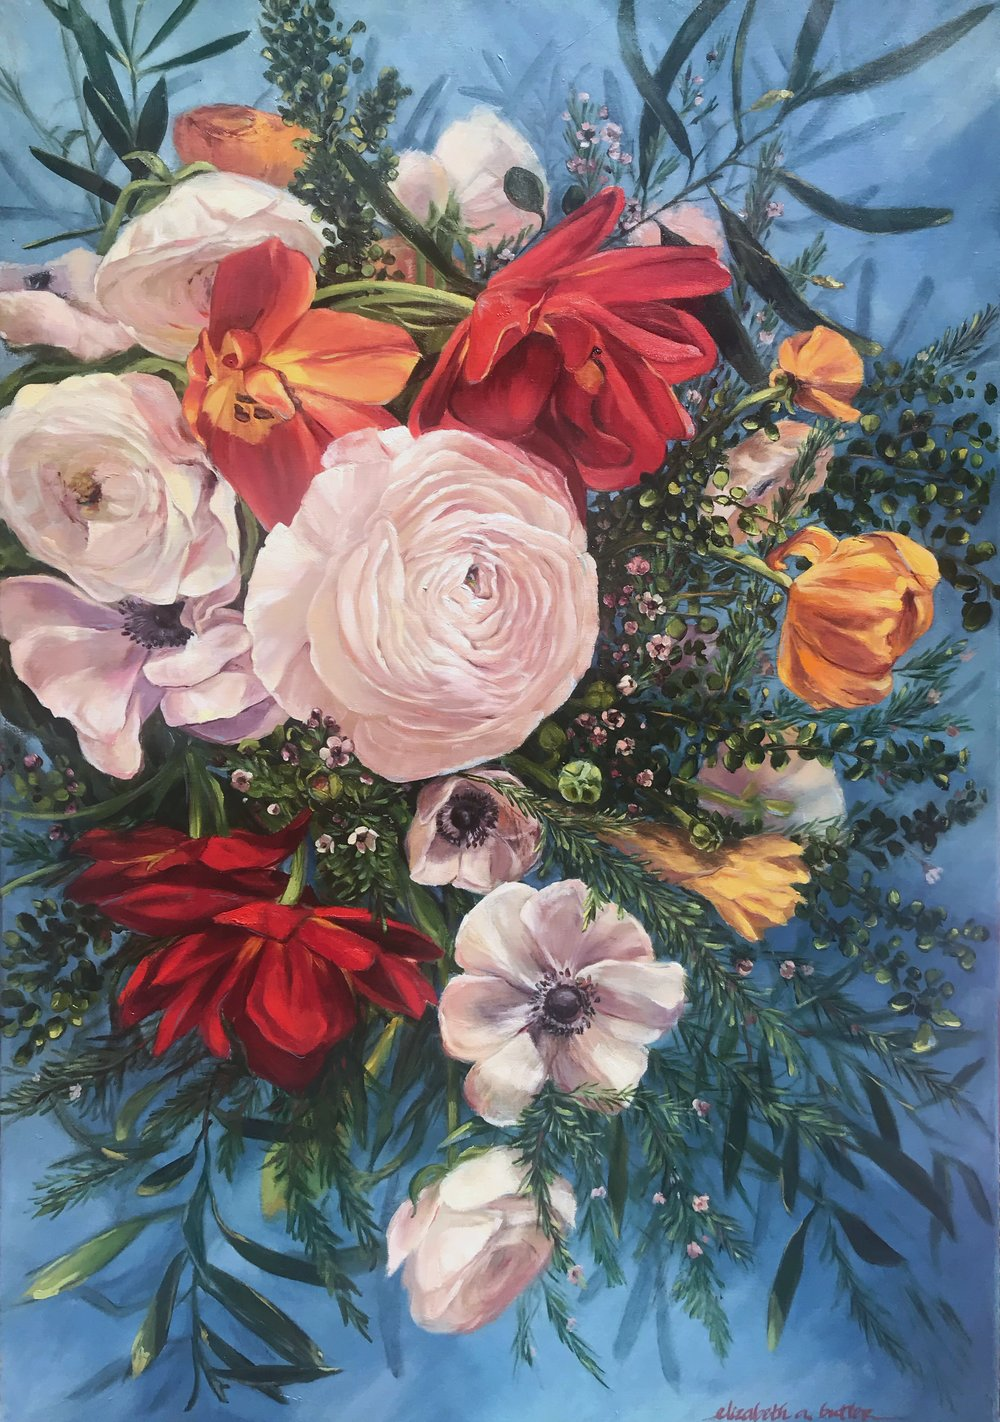 Extravagance in Bloom; Ranunculus, Red Tulips, and Anemones